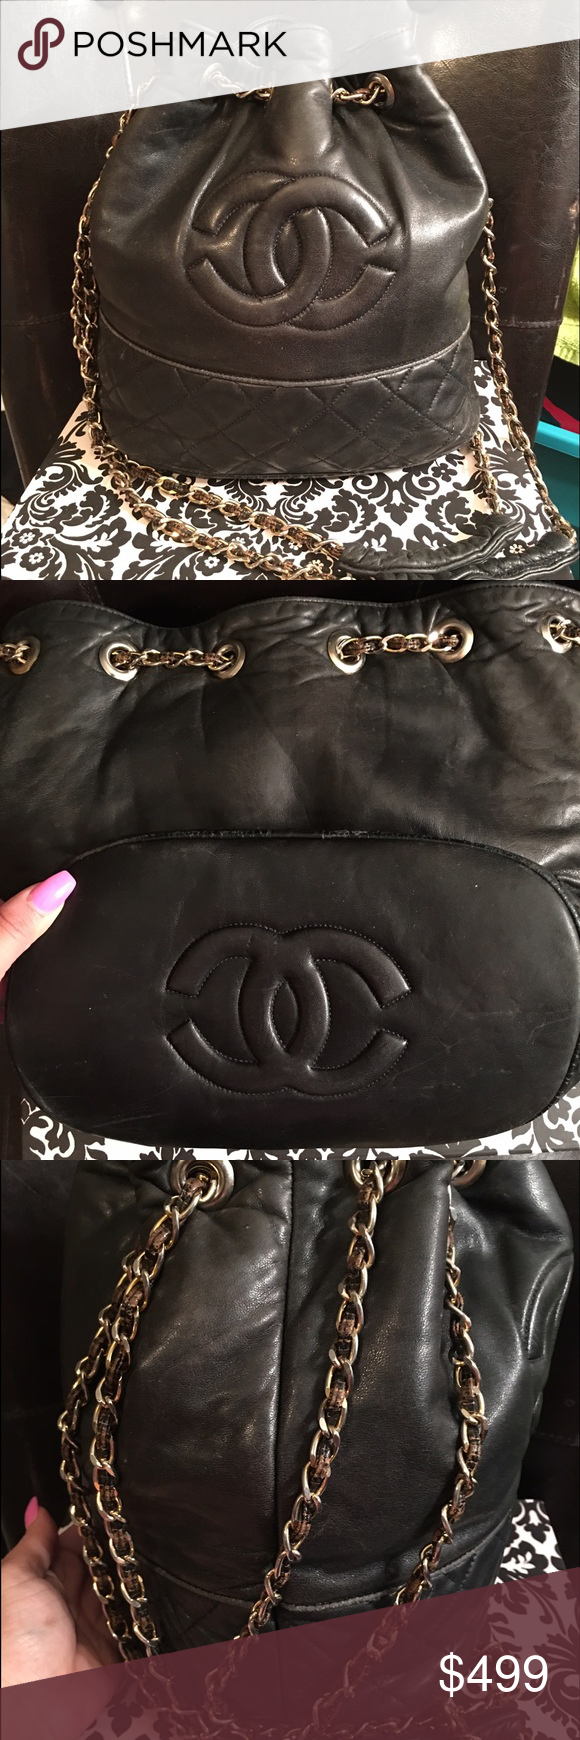 4f5e1107610b Authentic Chanel Vintage bucket bag This gorgeous Chanel black lambskin ' bucket' bag is a